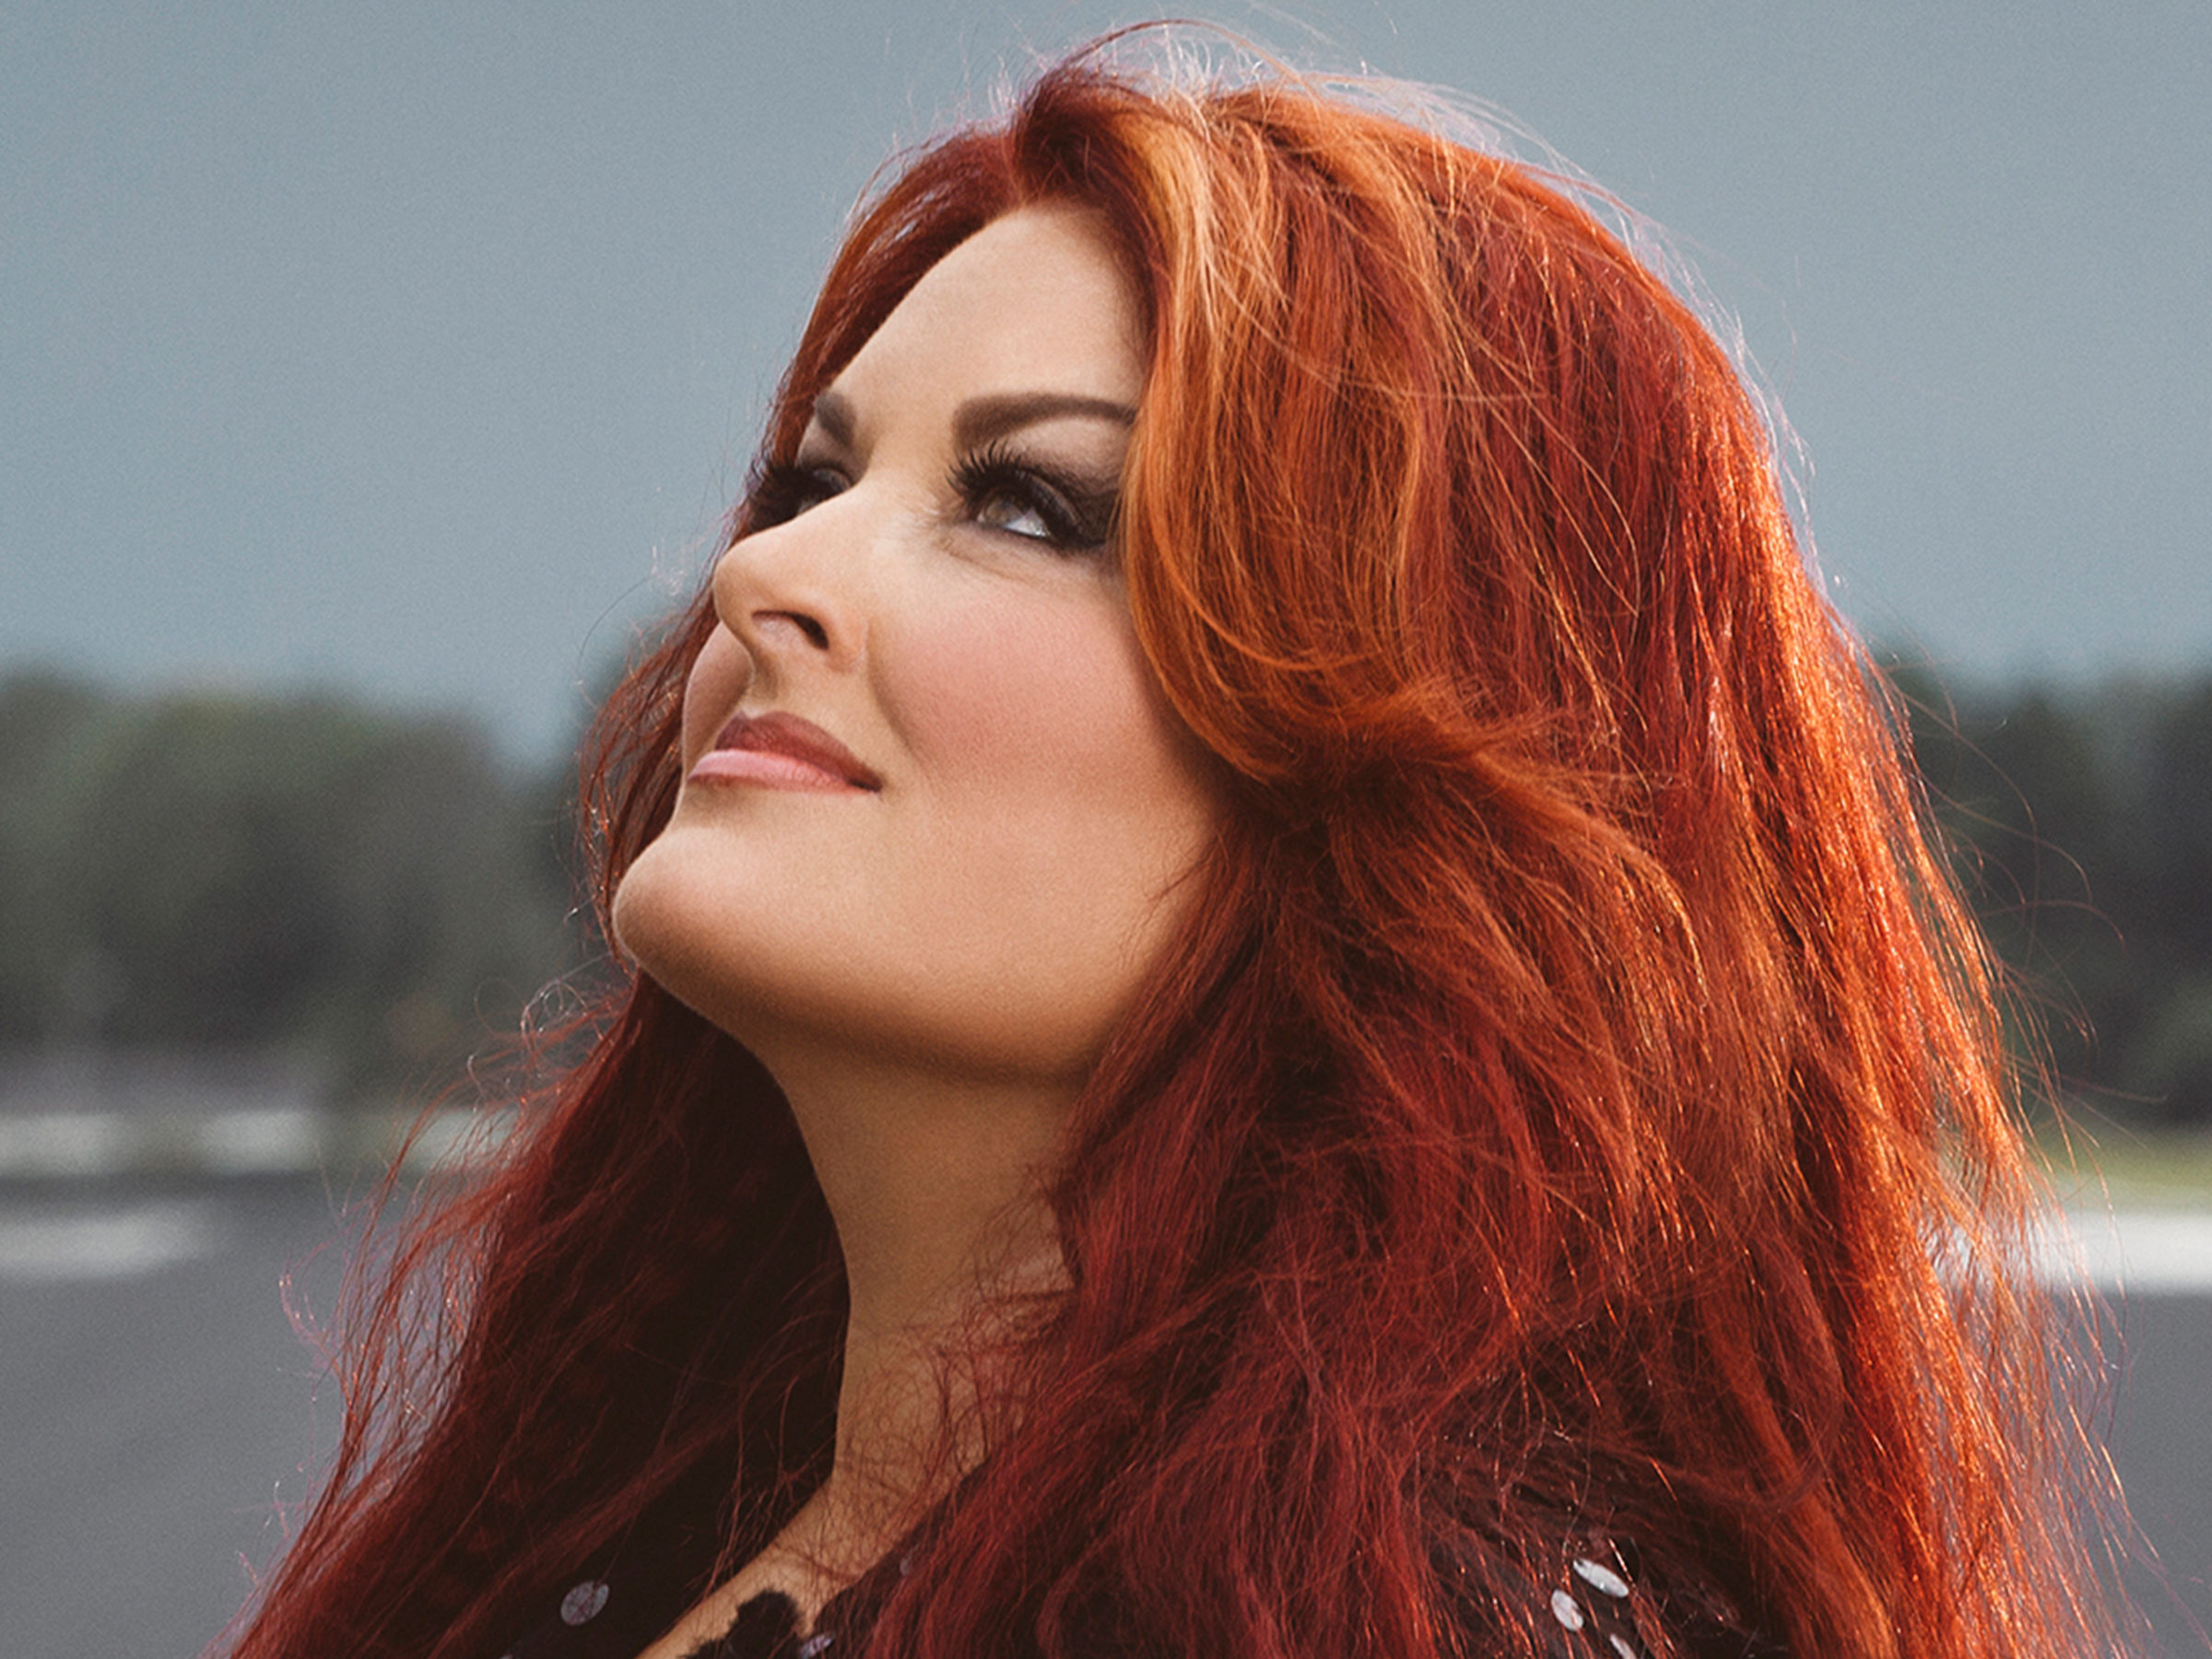 Five-time GRAMMY winner and New York Times bestselling author, Wynonna has always revolved her career around telling stories.